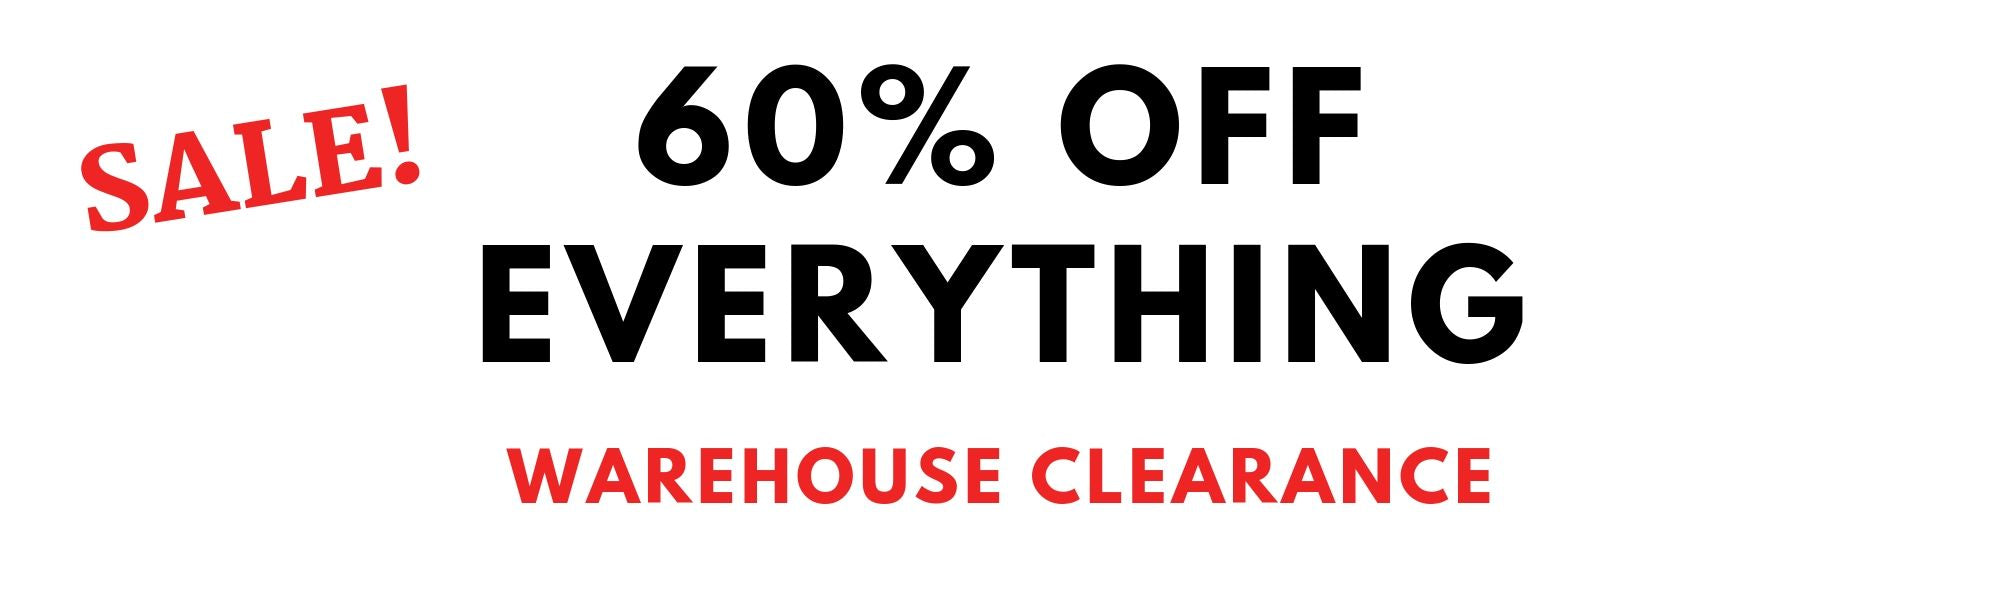 Warehouse Clearance Sale! 60% off the best performance lifestyle gym activewear clothes